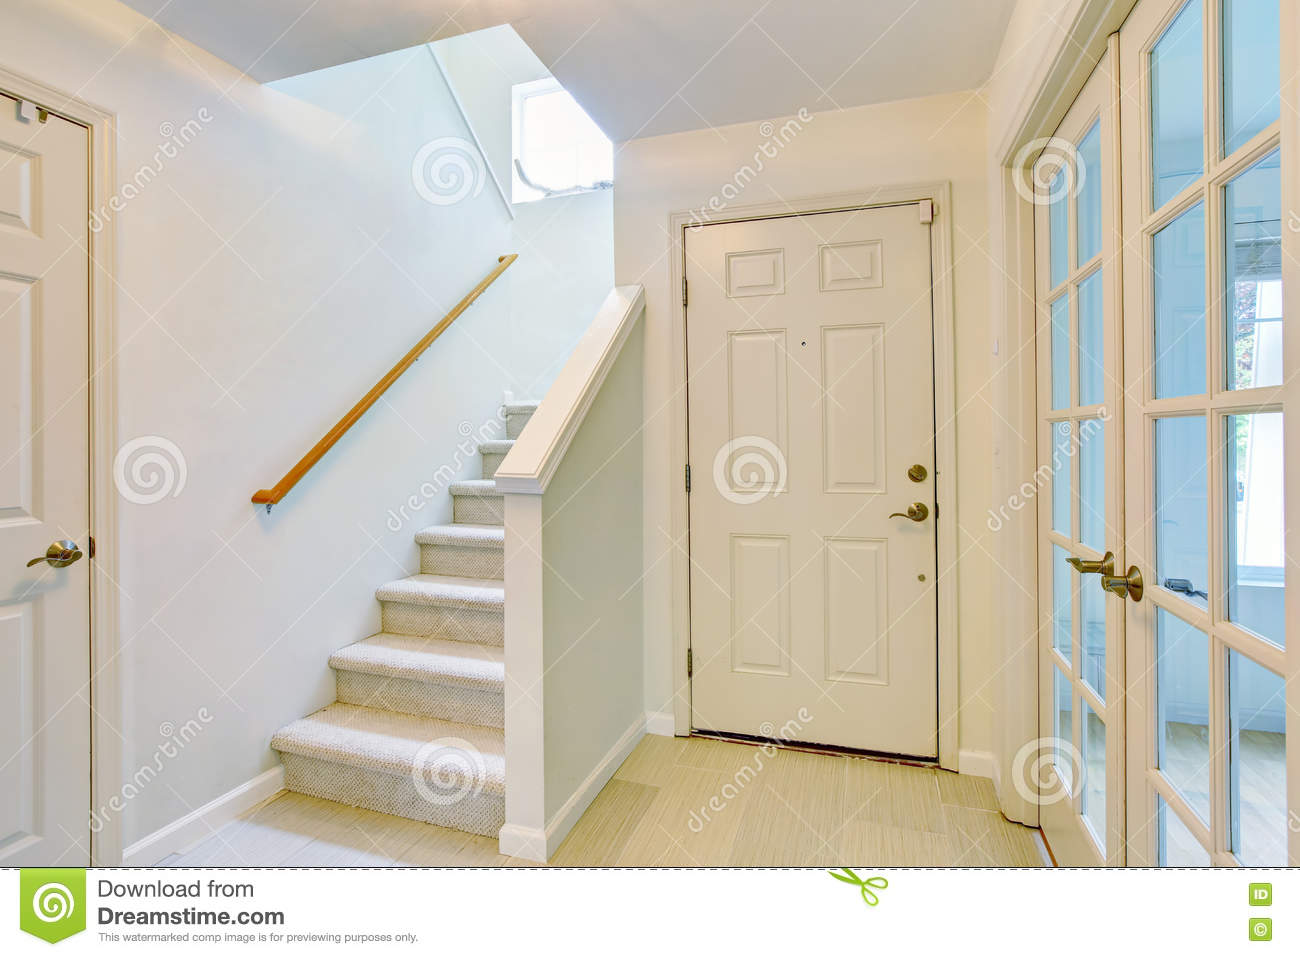 Download Hallway Interior In Light Tones With Hardwood Floor And Carpet  Stairs Stock Photo   Image